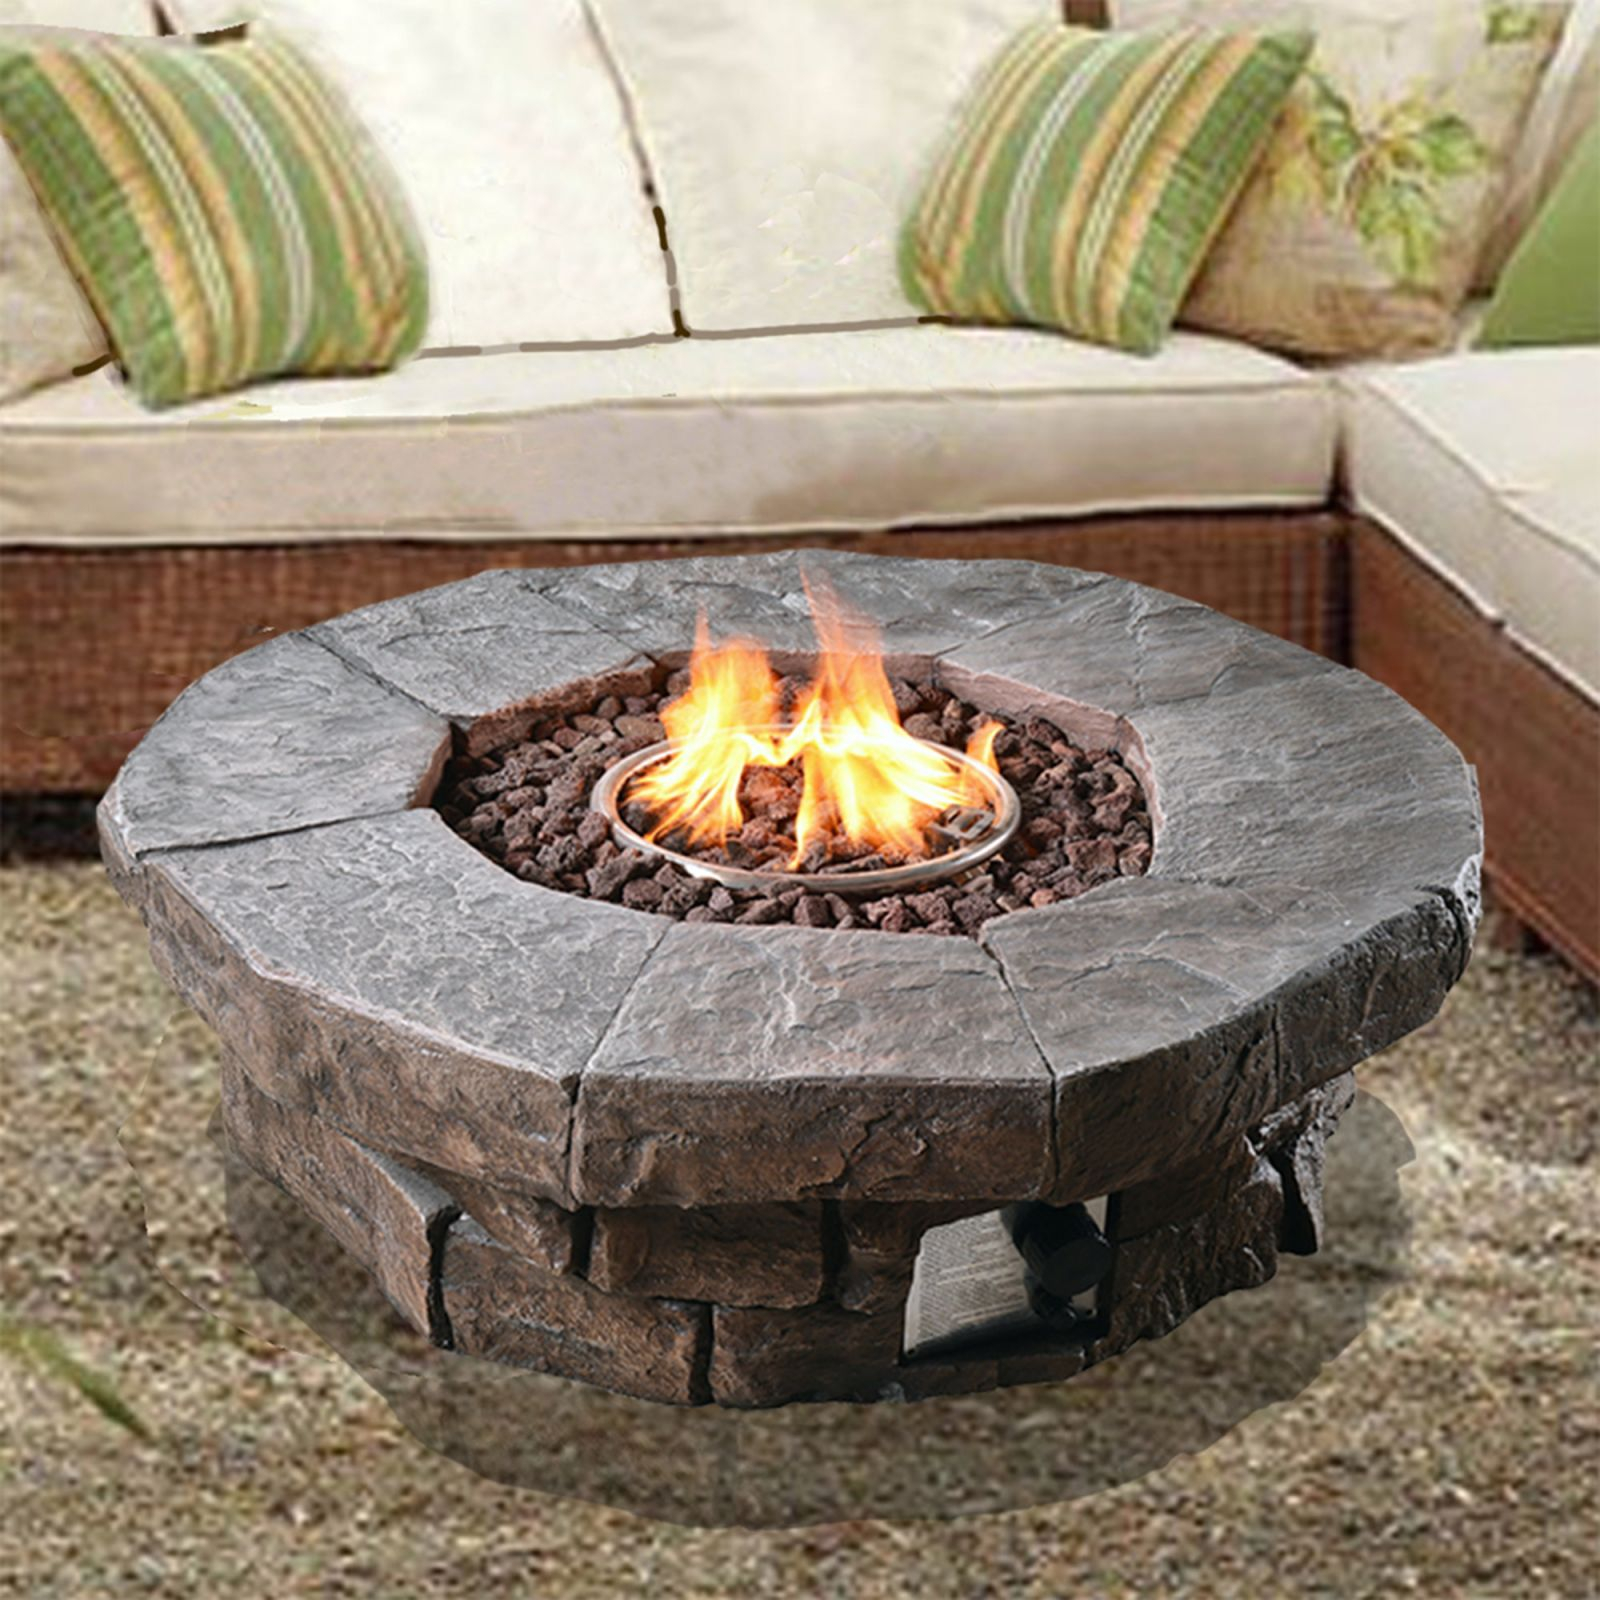 Peaktop Outdoor Polyresin Propane Gas Fire Pit & Reviews   Wayfair inside Outdoor Propane Fire Pit